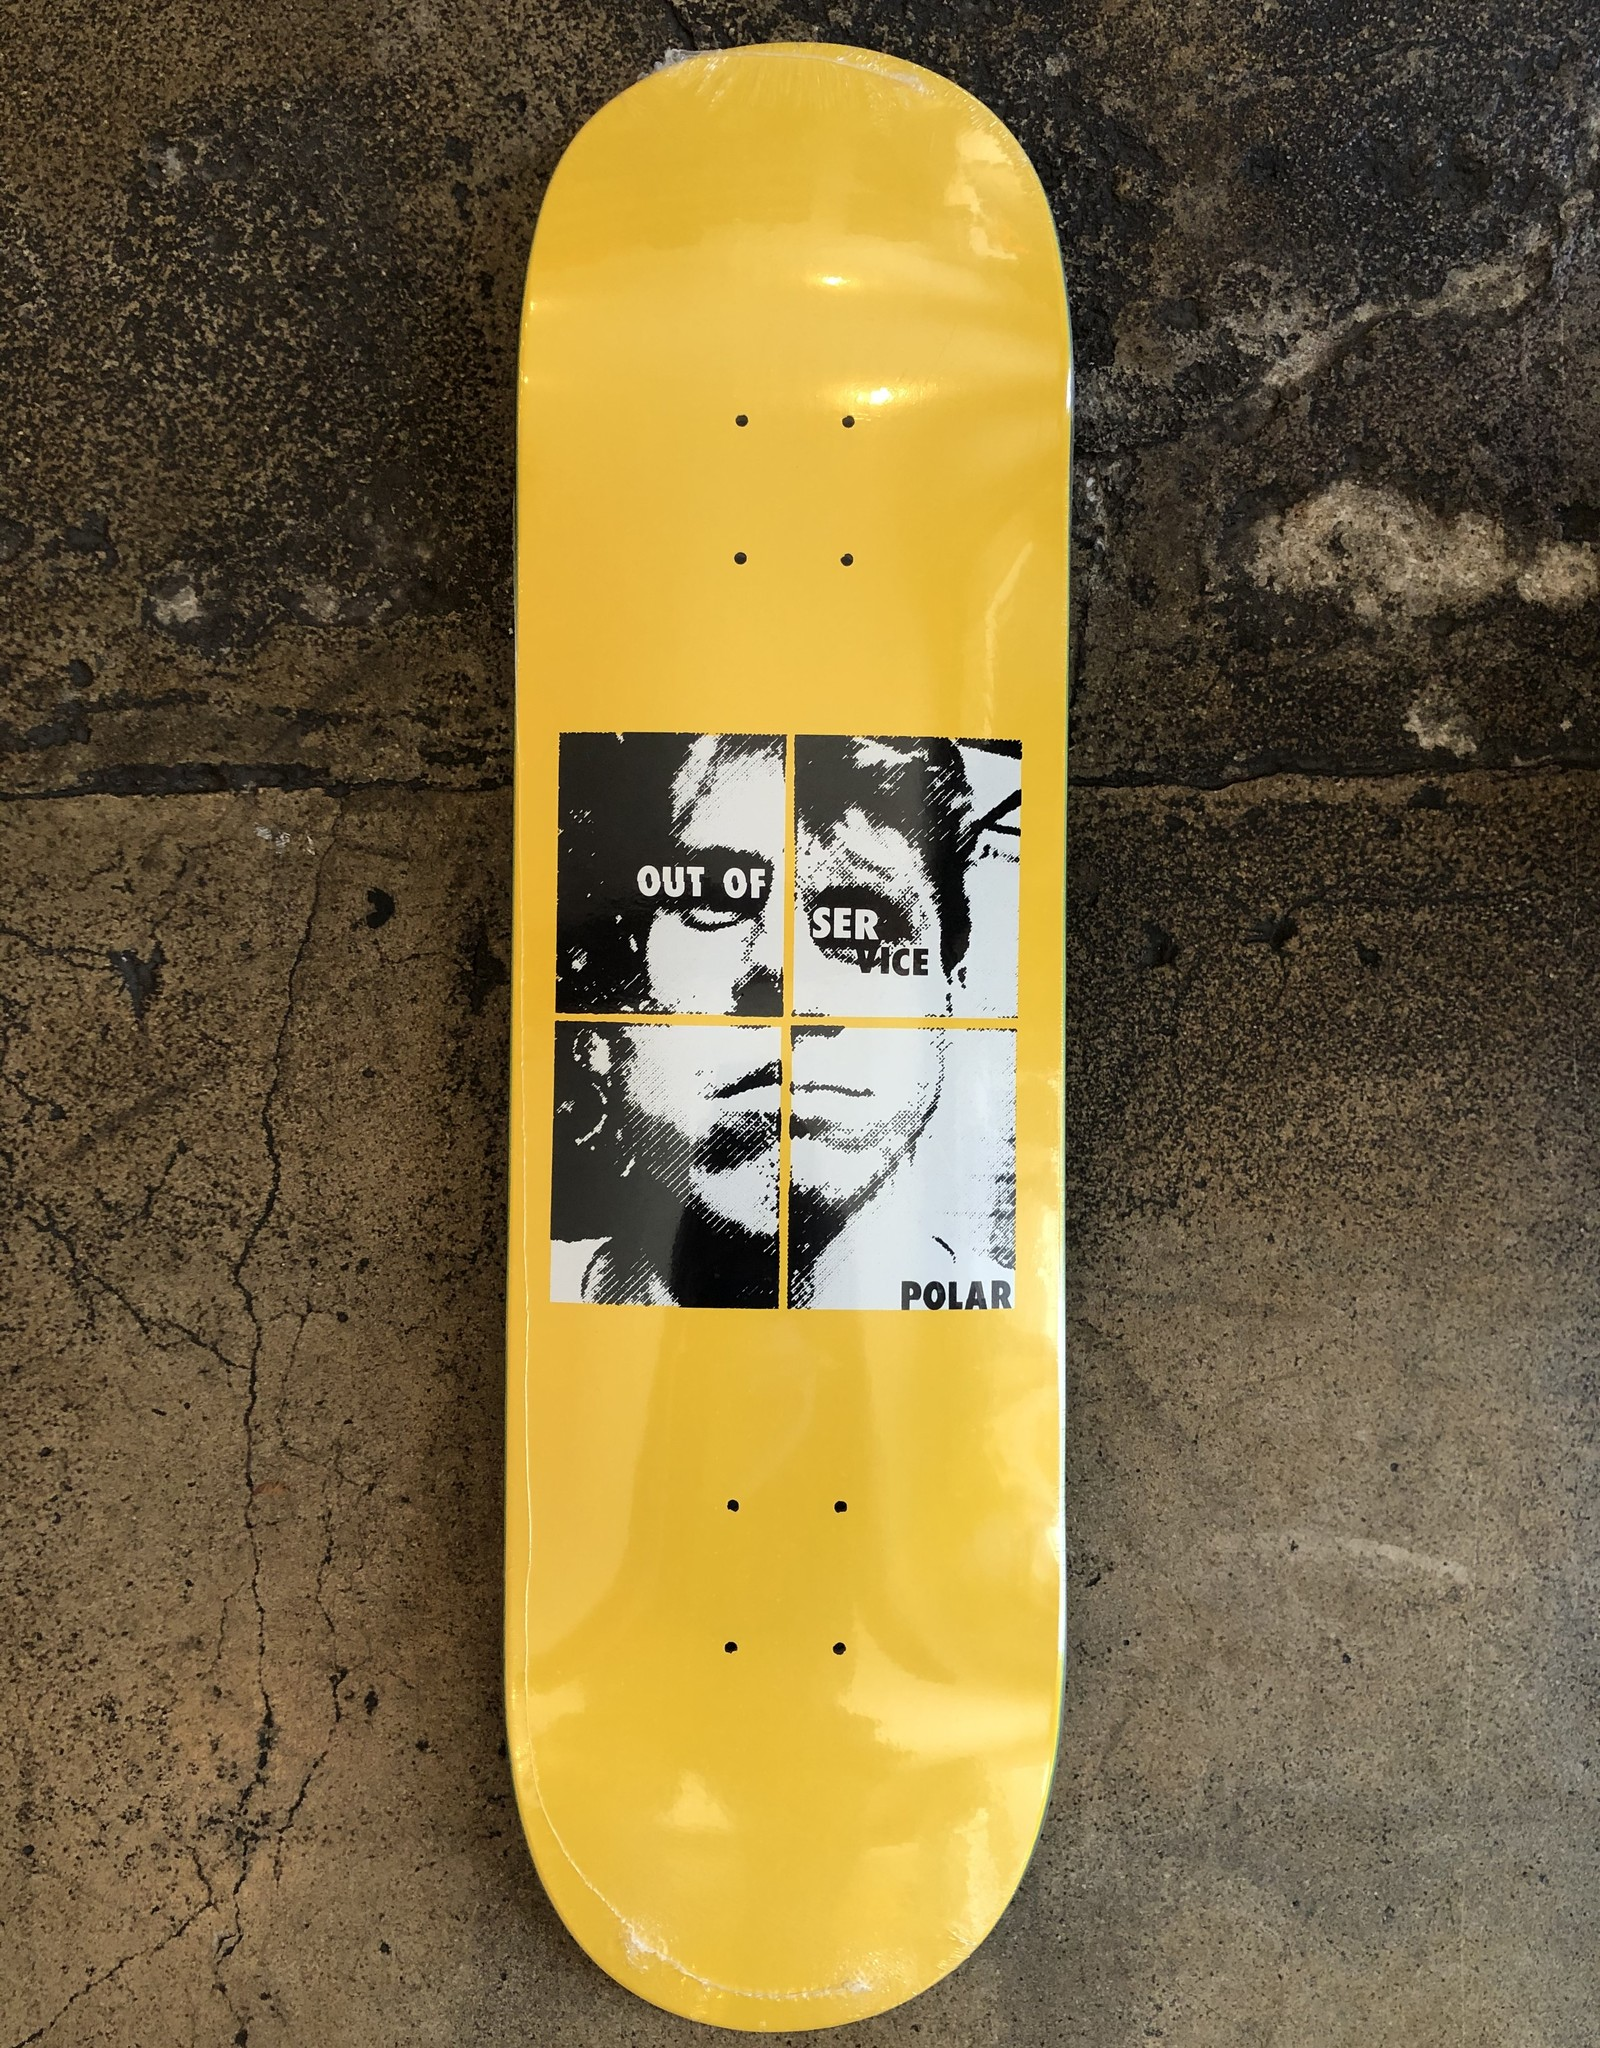 POLAR SKATE CO. DANE BRADY OUT OF SERVICE YELLOW DECK - 8.625